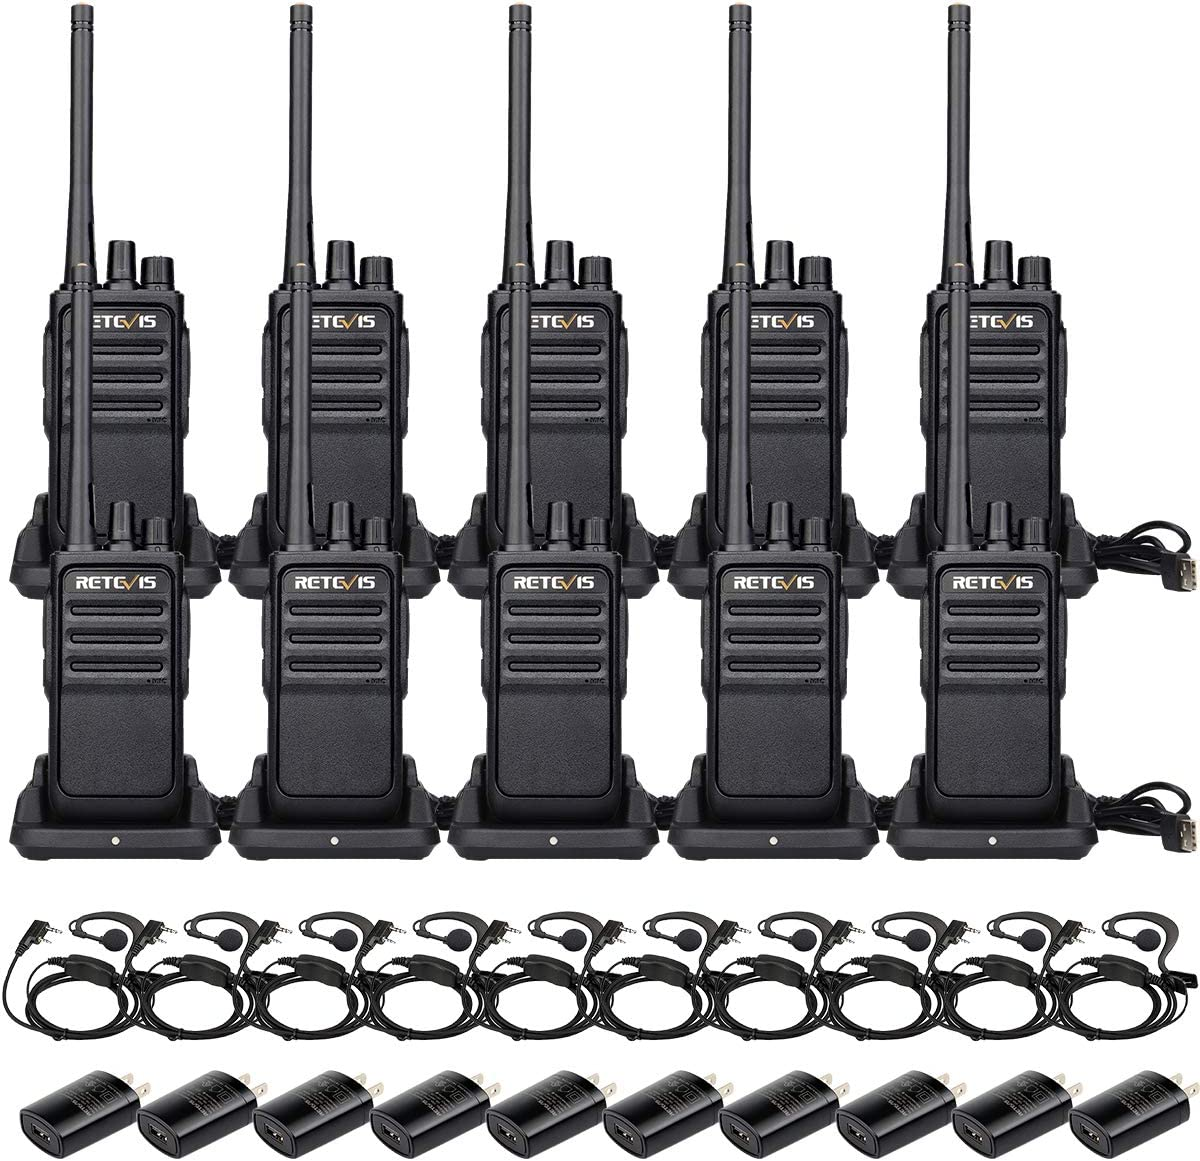 Retevis RT17 Two Way Radios Long Range Rechargeable,Walkie Talkie for Adults,2 Way Radio with Earpiece G Shape,Durable USB Charging,Police School Security Business(10 Pack)